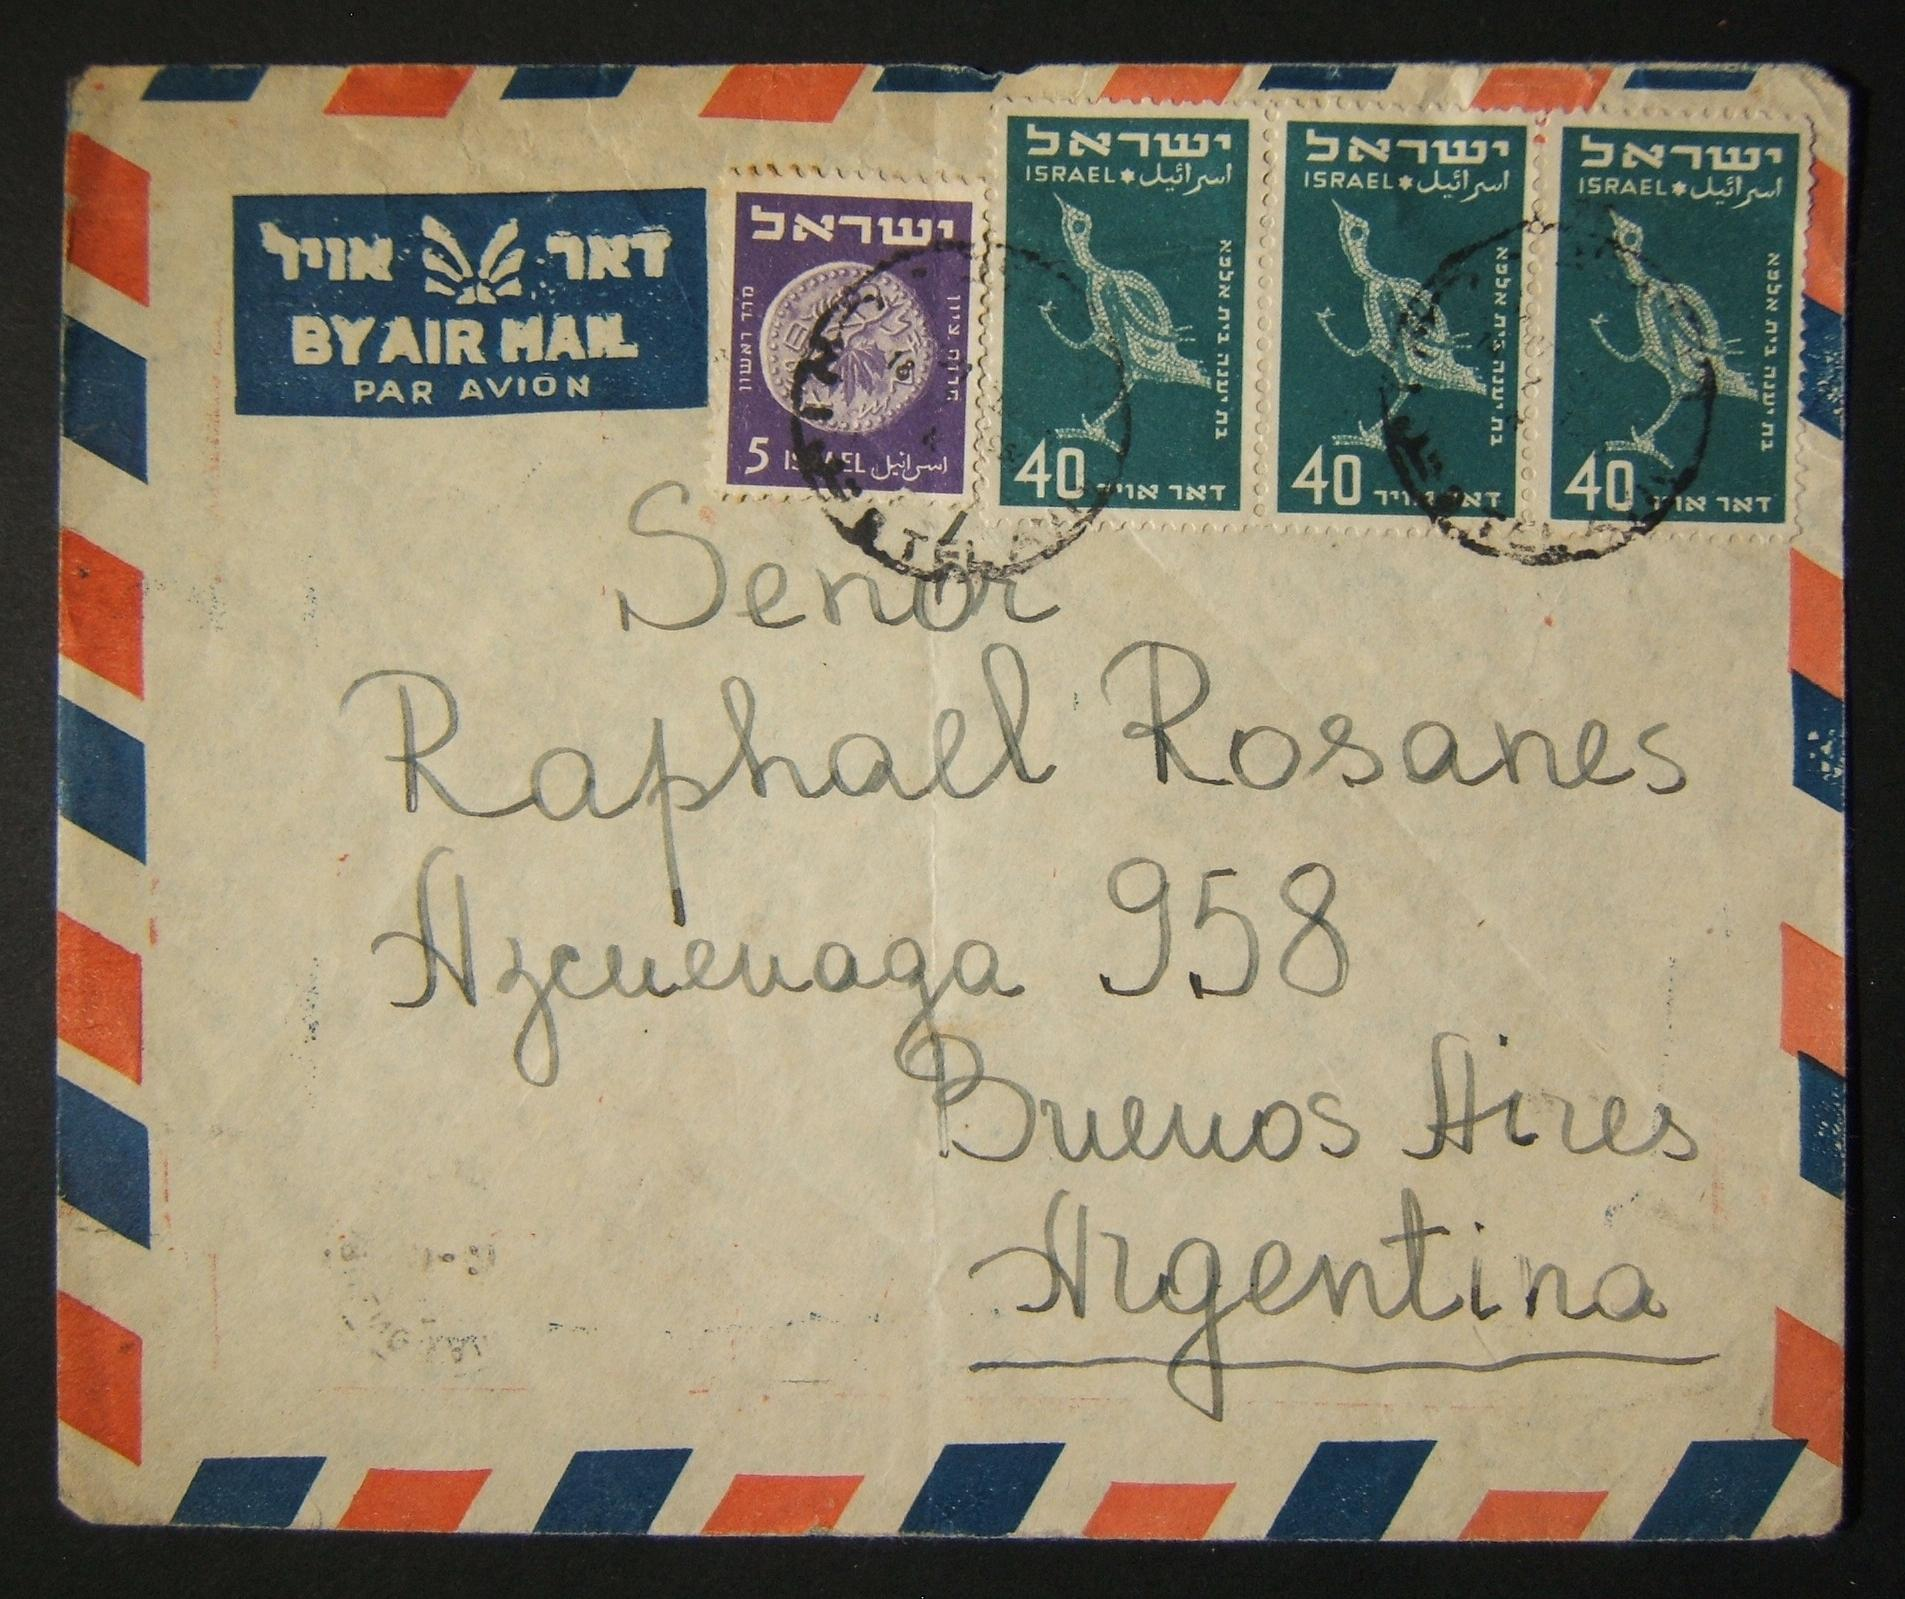 1950 1st airmail / PO's, rates & routes: 18-7-1950 Israeli airmail stationary cover ex TLV to ARGENTINA franked 125pr at the FA-2a period rate using horizontal strip 3x 40pr (Ba34)